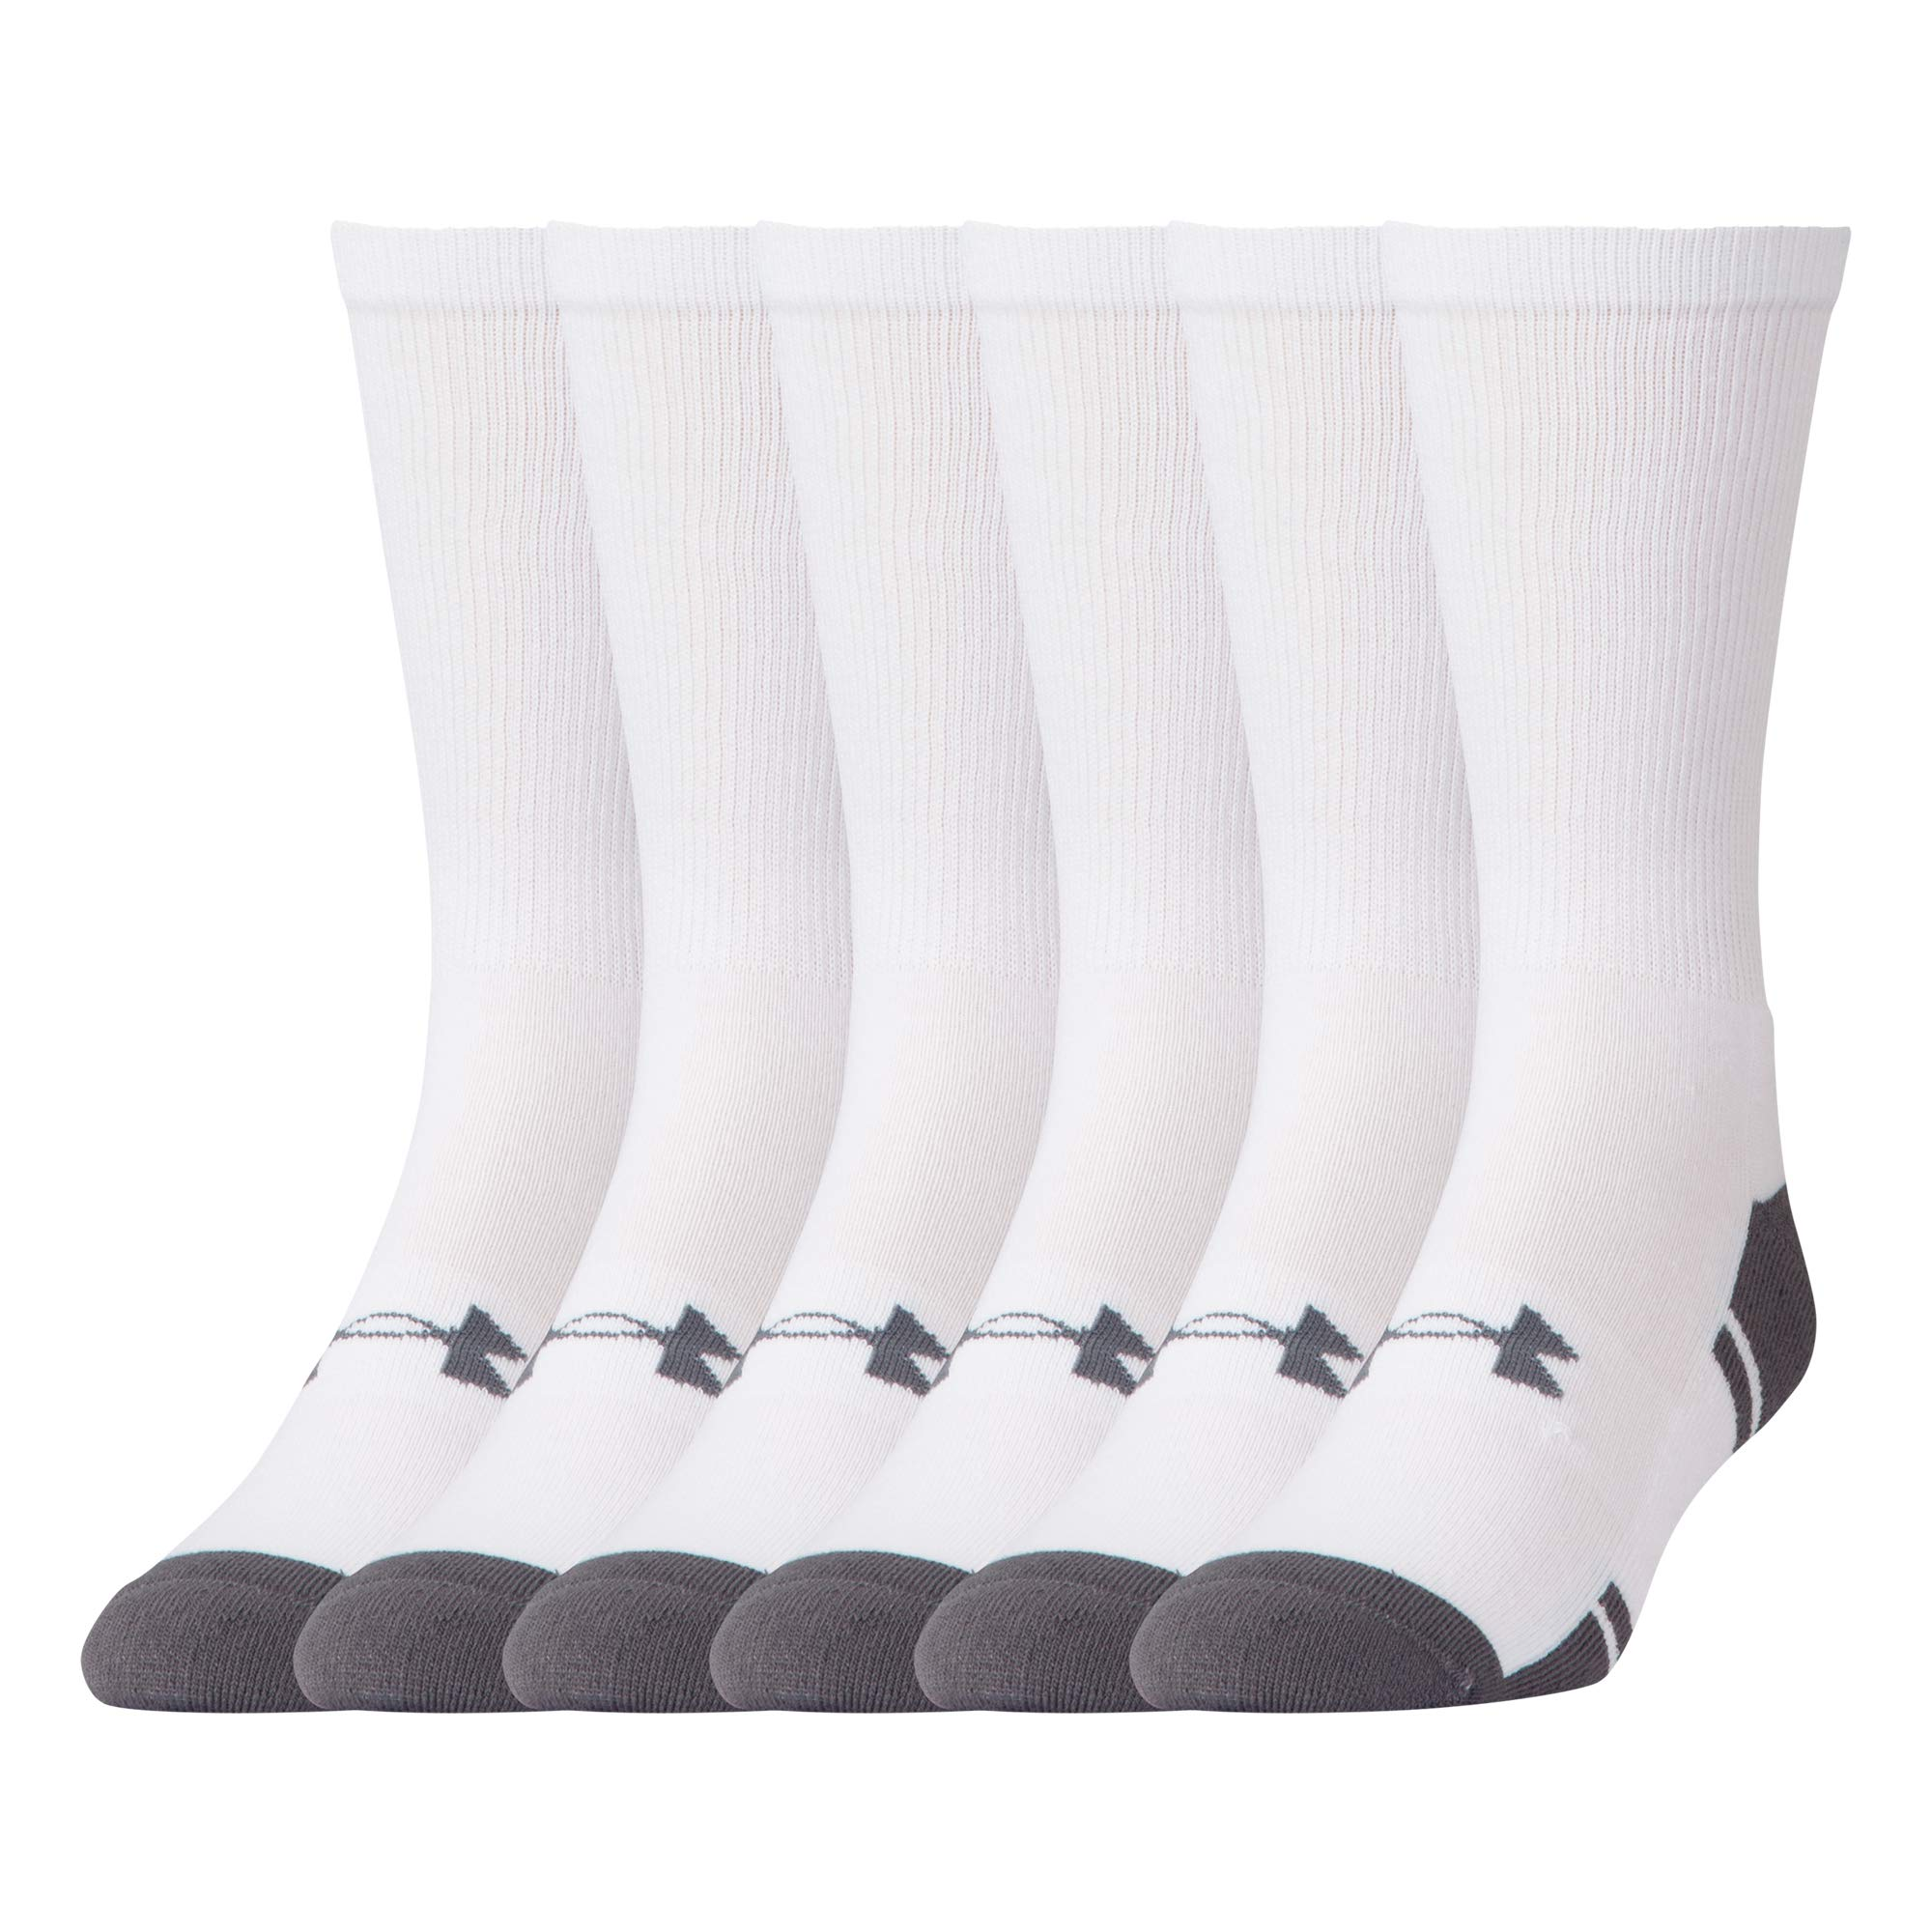 UNDER ARMOUR Resistor 3.0 Crew Socks, White/Graphite, Shoe Size: Mens 12-16 by Under Armour